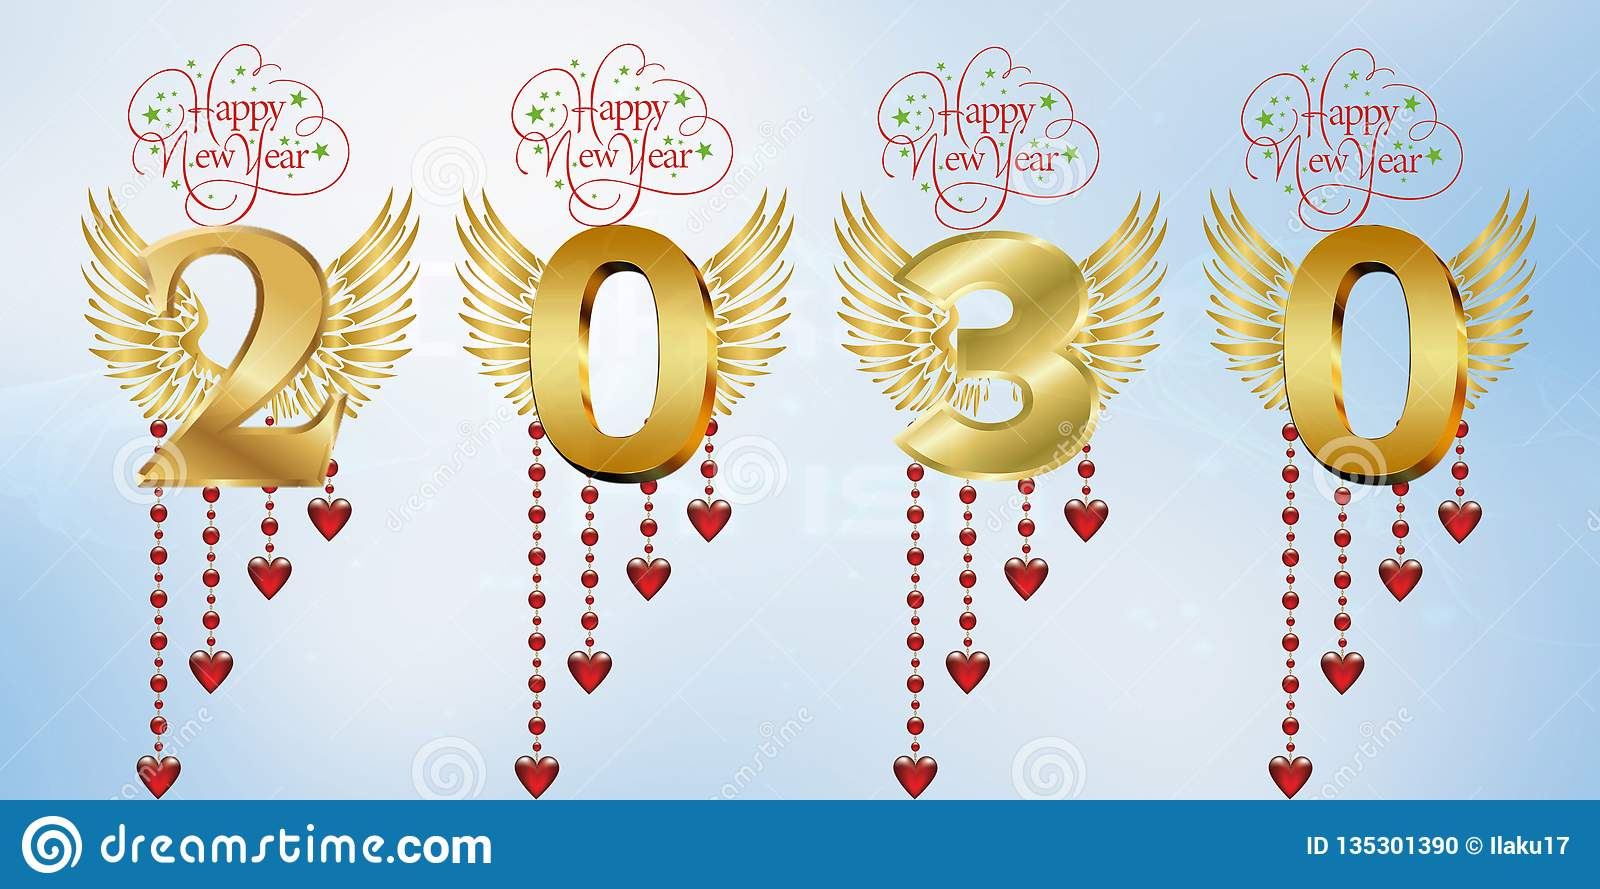 A Year Of Happiness happy new year 2030 stock illustration. illustration of 2028